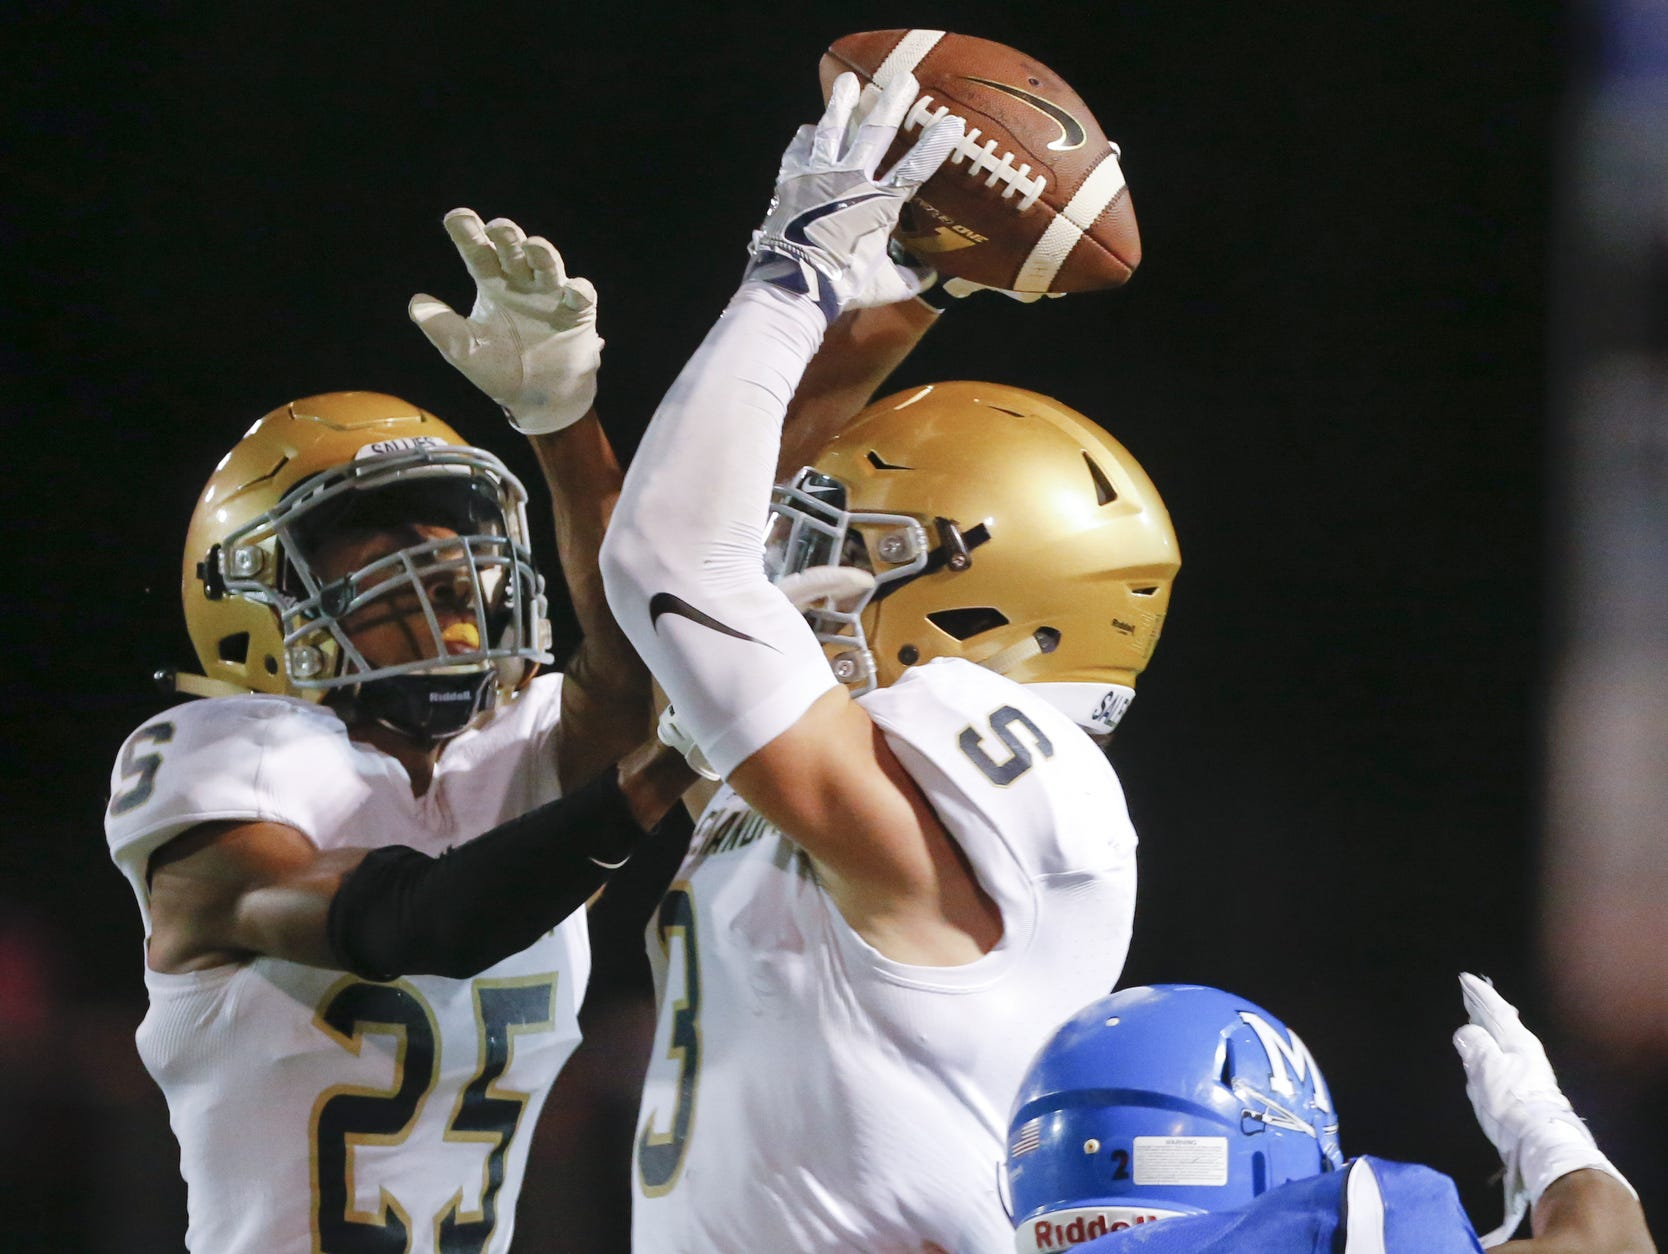 Salesianum's Mike Drake snags a pass intended for Middletown's Kedrick Whitehead in the second quarter at Cavalier Stadium Friday. Salesianum's Desmond Bagley also defends (left).